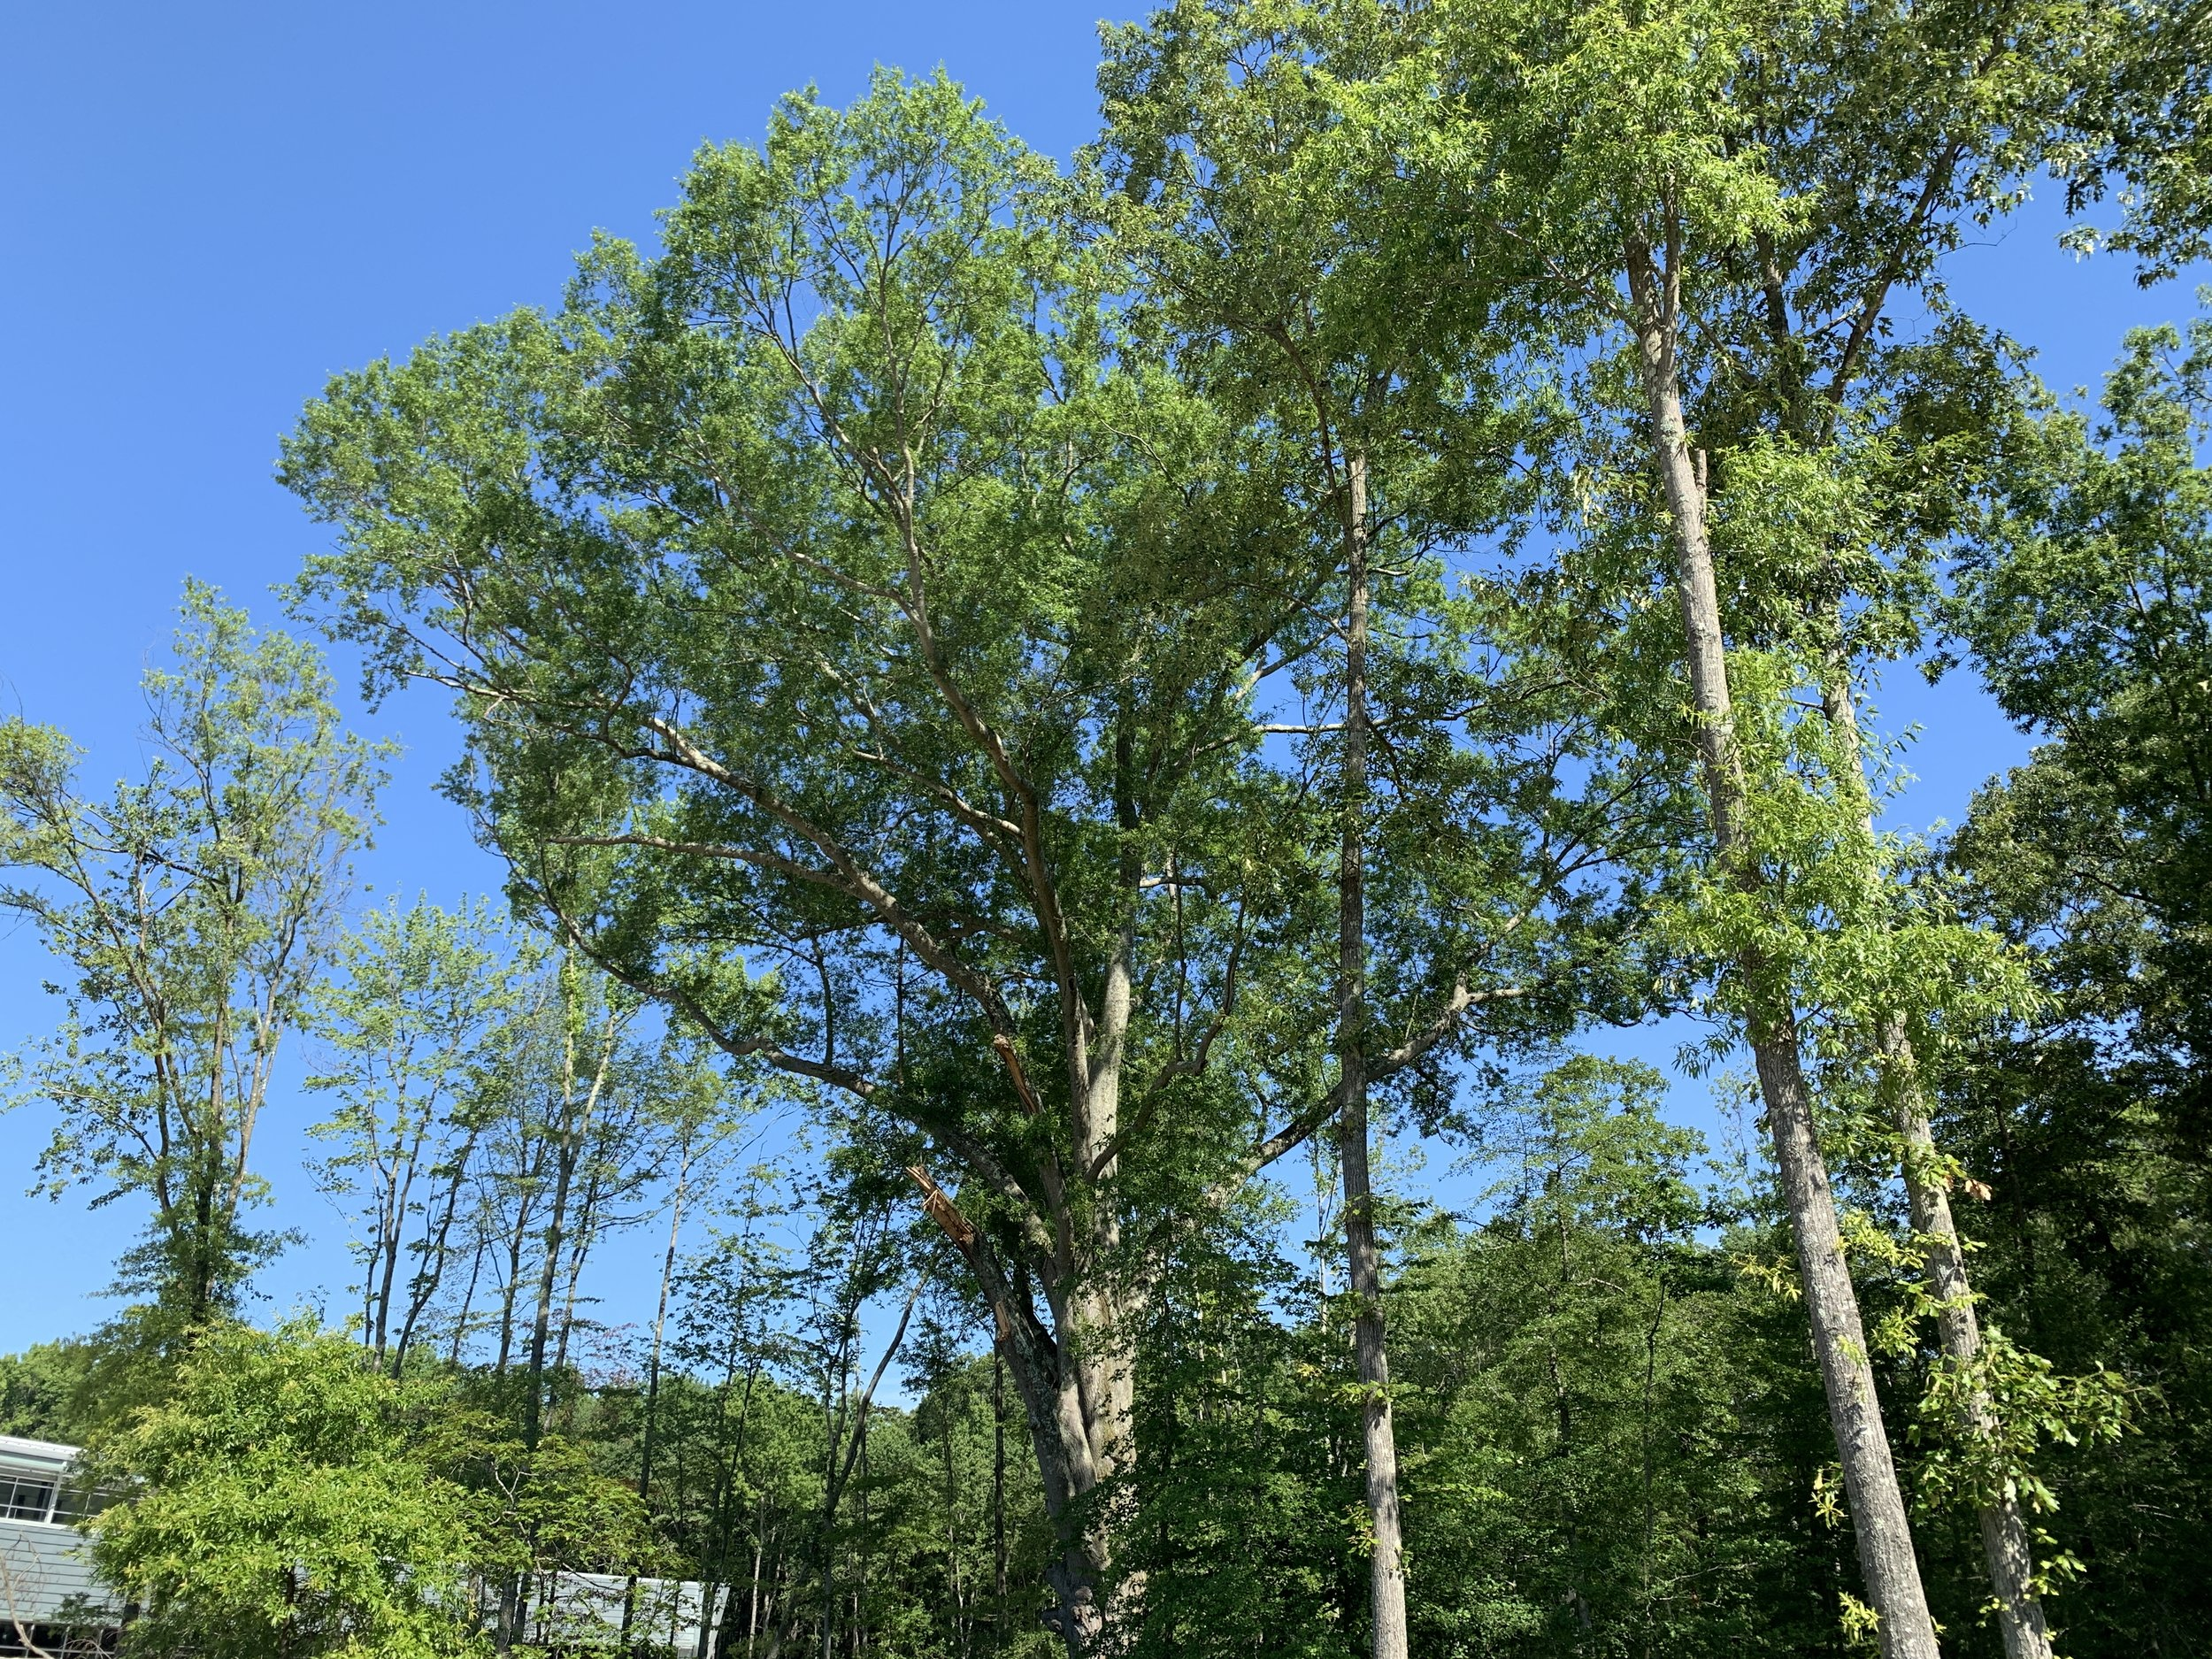 The mother specimen tree that seeded the hundreds of surrounding trees was named Willie Oak by artist, Judy Moore.